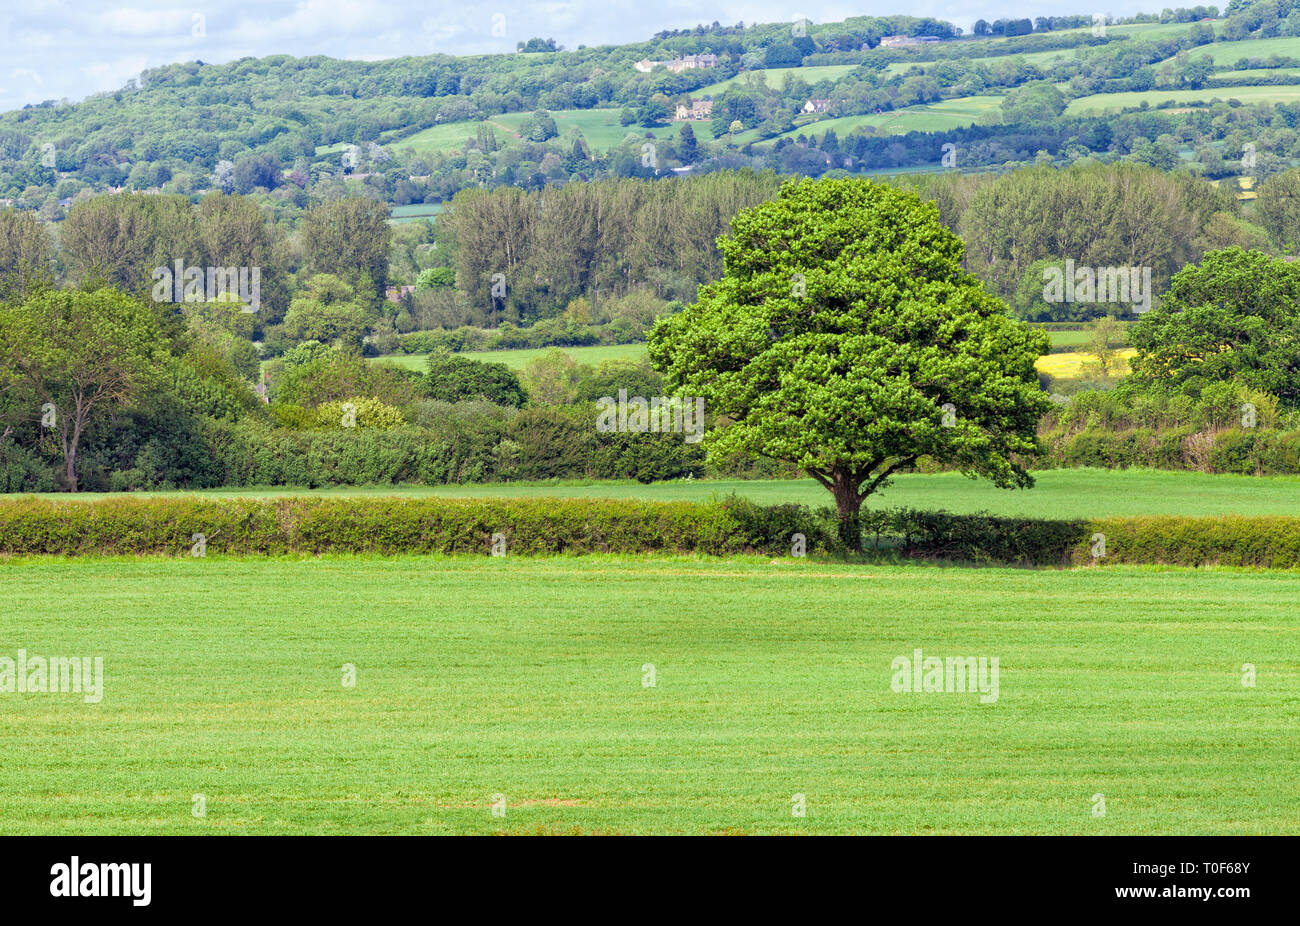 Leafy tree in the middle of green farm field, surrounded by hedgerow, woodlands with country houses on a hill, Cotswolds countryside on a summer day . Stock Photo